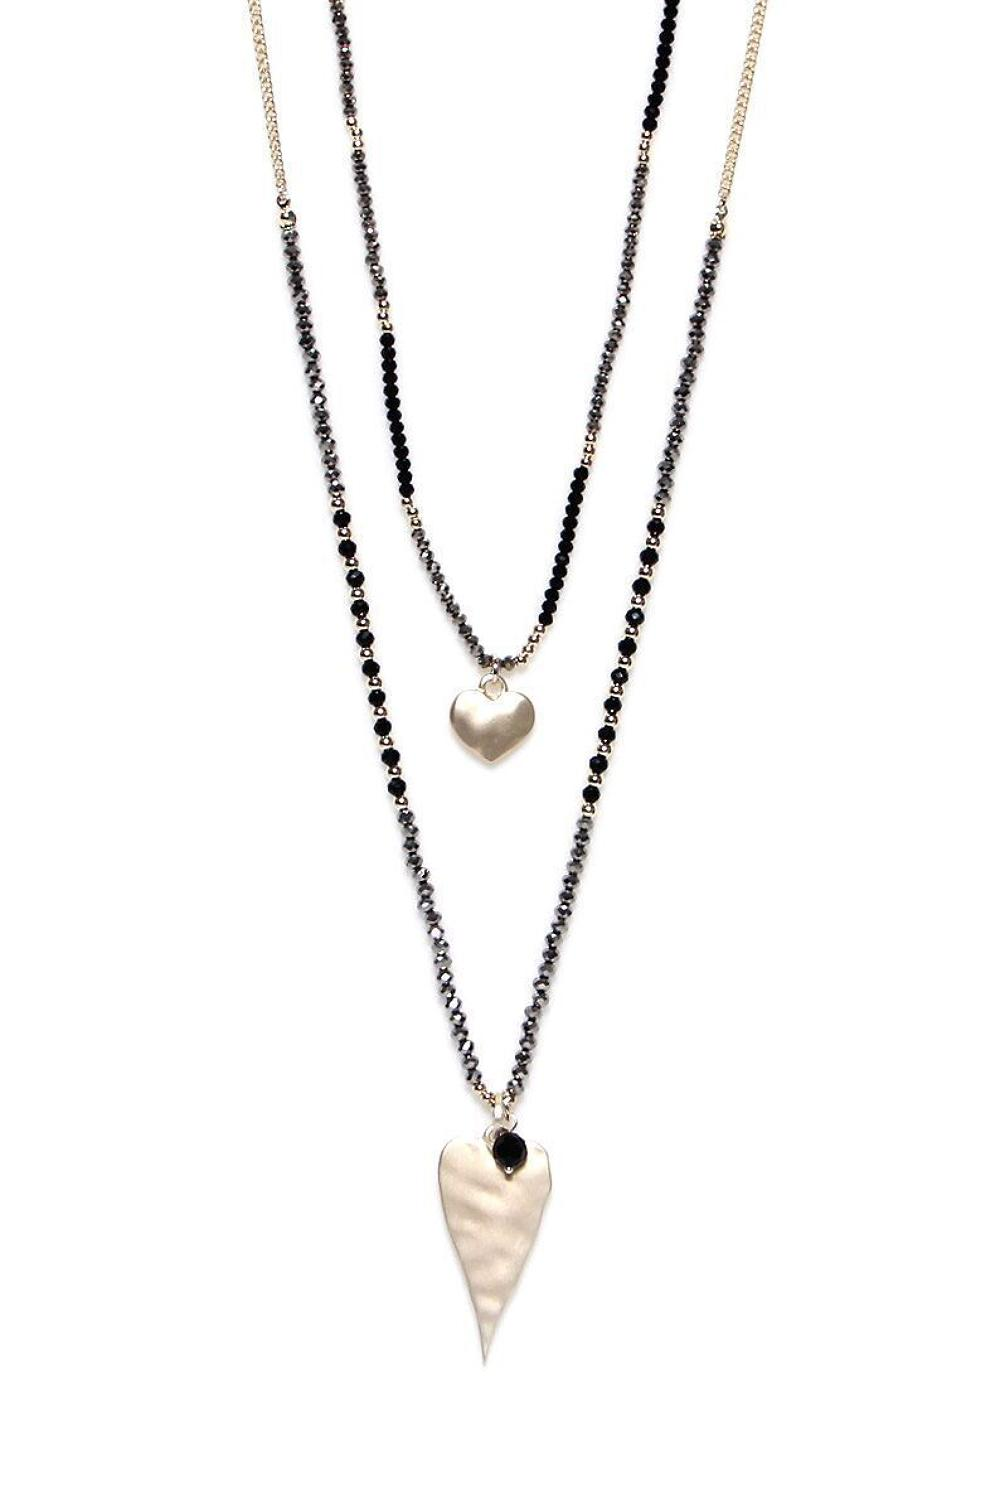 Envy - 2 hearts gold necklace - Ref 187GDNW